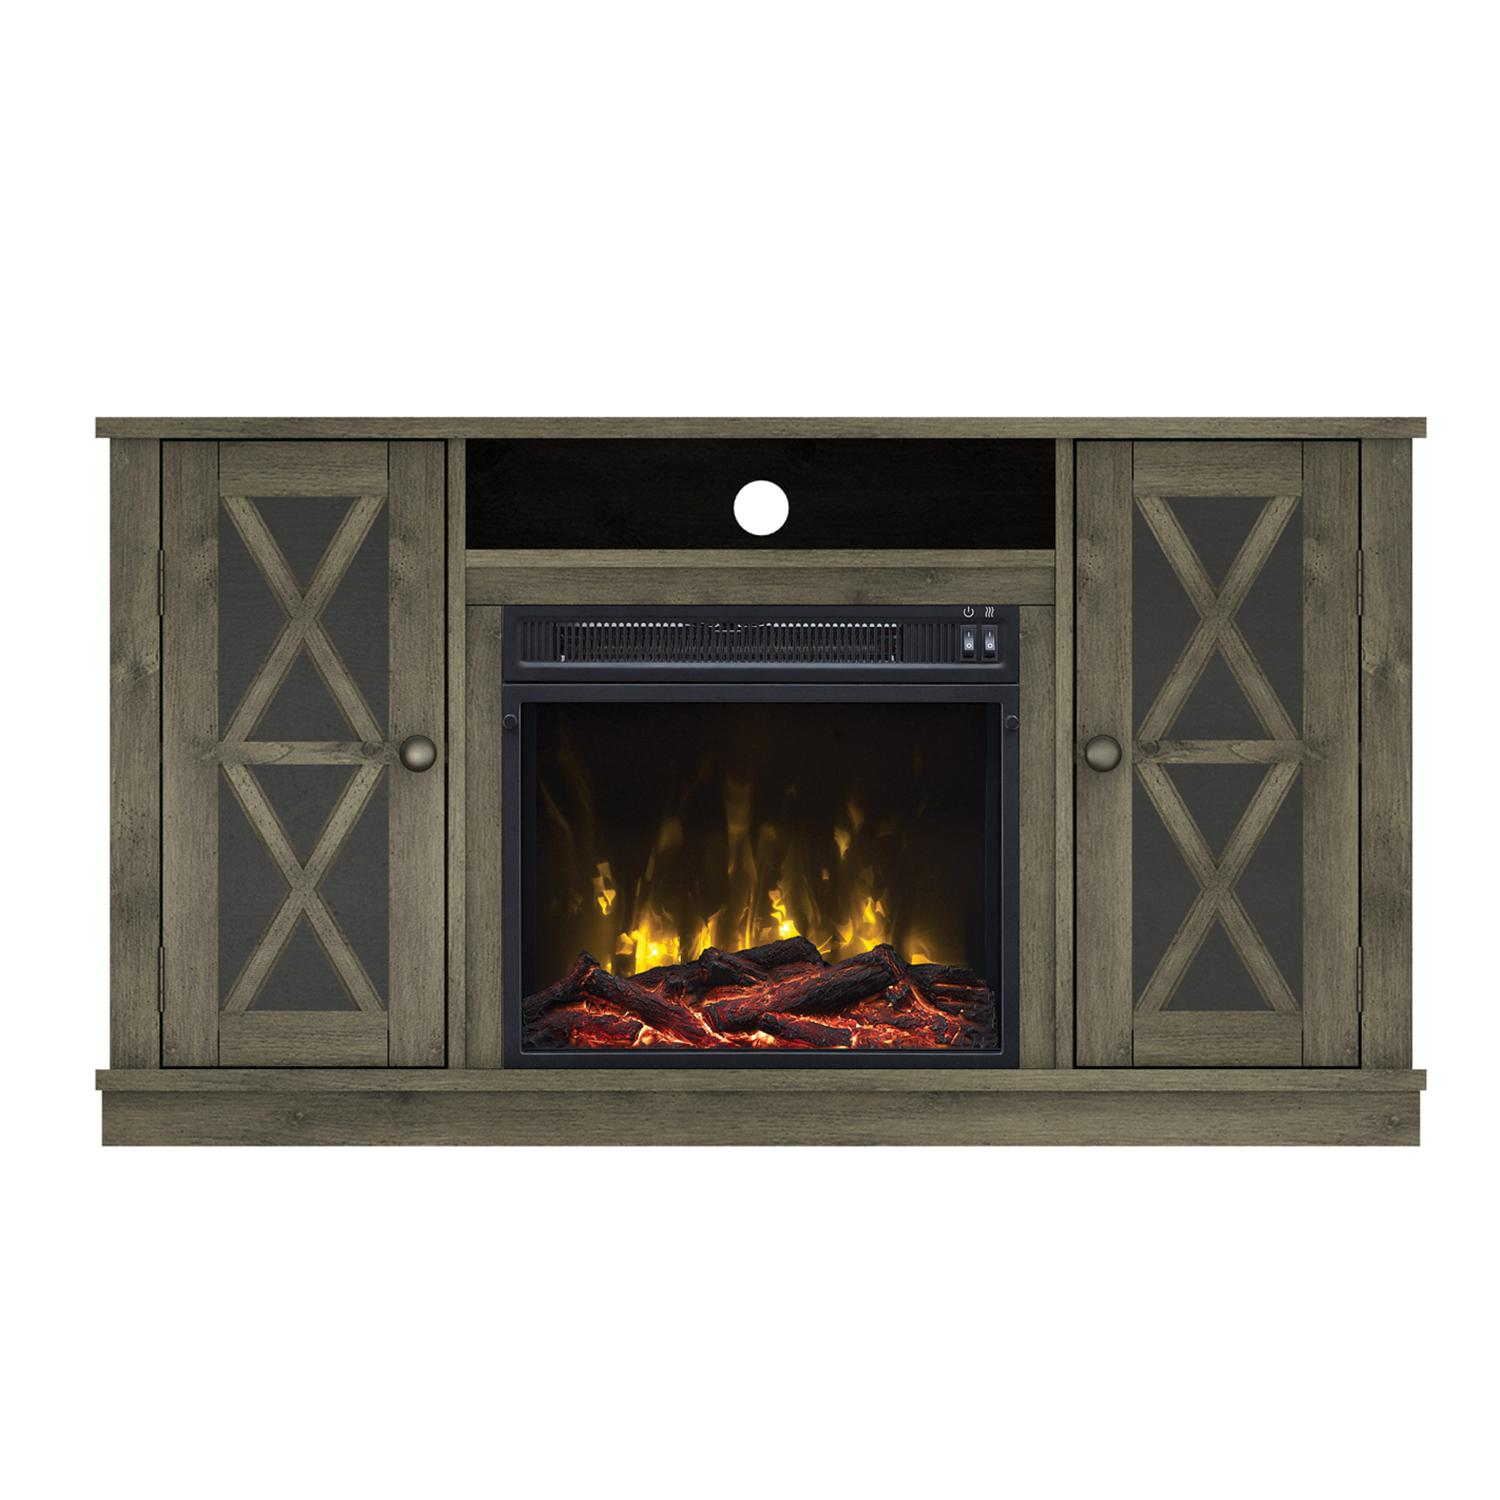 "Classicflame Bayport 47 1/2"" Tv Stand With Electric Fireplace - Spanish Gray - 18mm6092-pi14s"